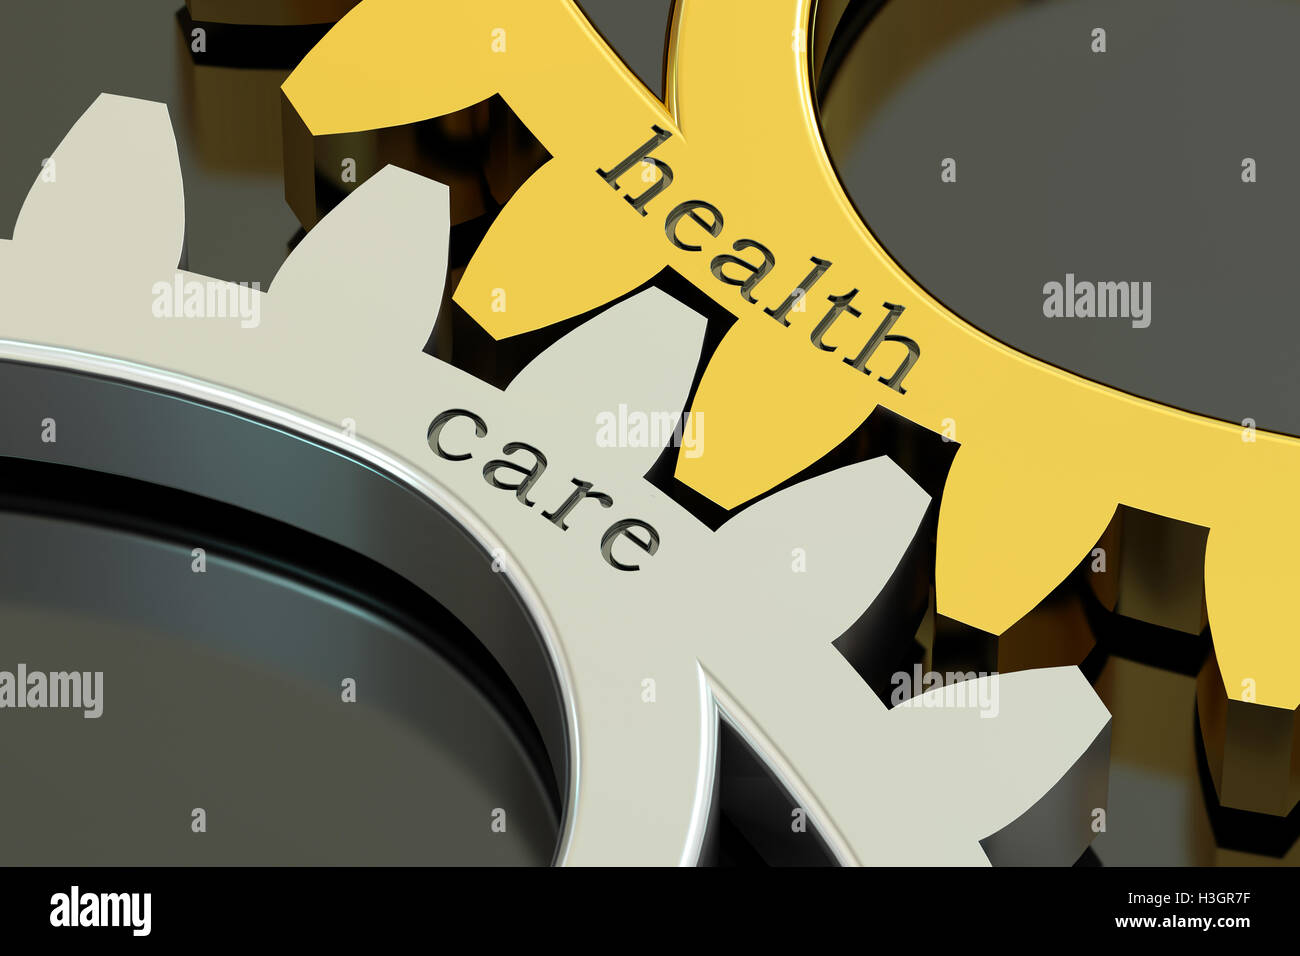 Health Care, concept on the gearwheels, 3D rendering - Stock Image